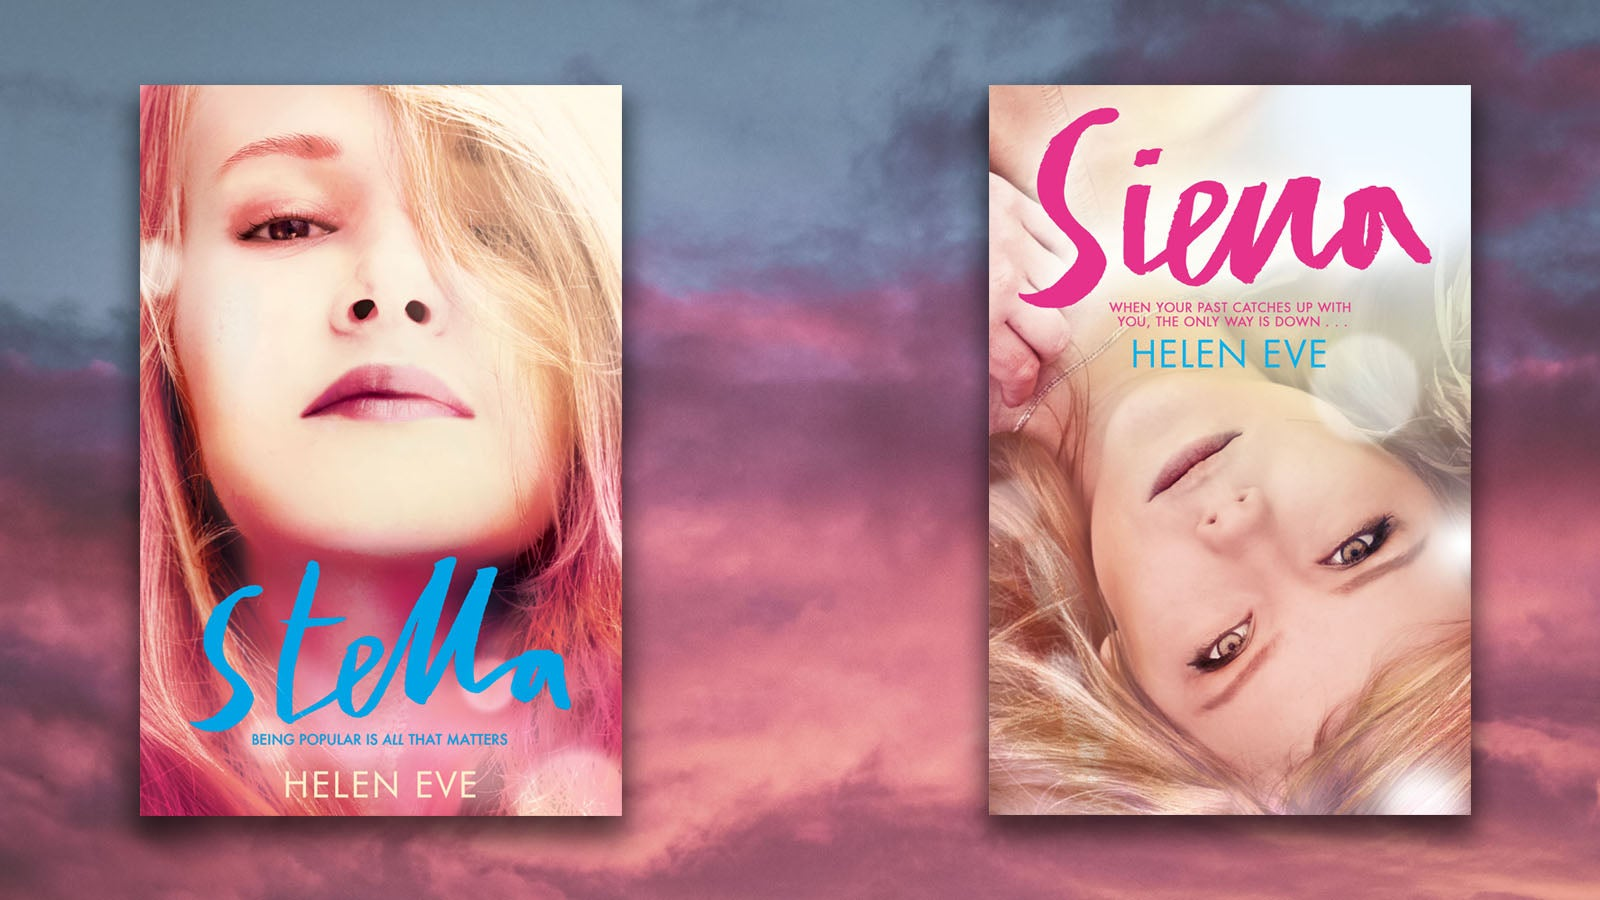 Stella and Sienna book jackets against a cloudy sky